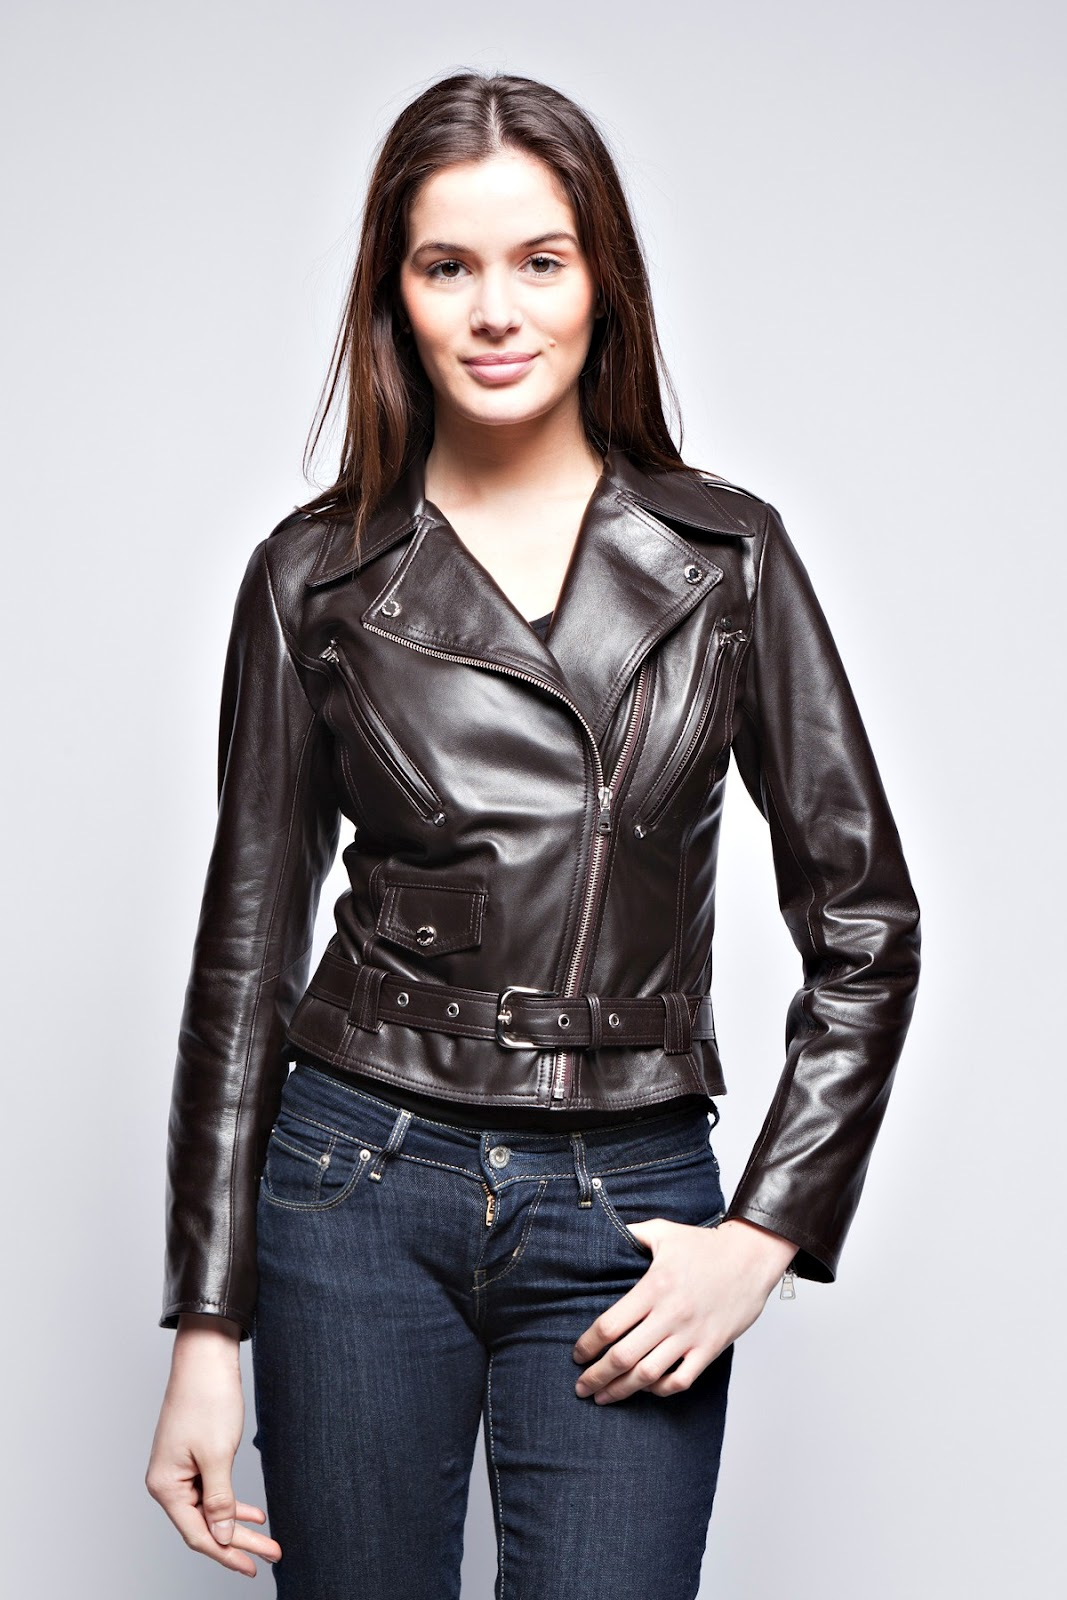 Discover the range of women's leather jackets from ASOS. Shop from our collection of leather & biker jackets for women in your favourite styles now.